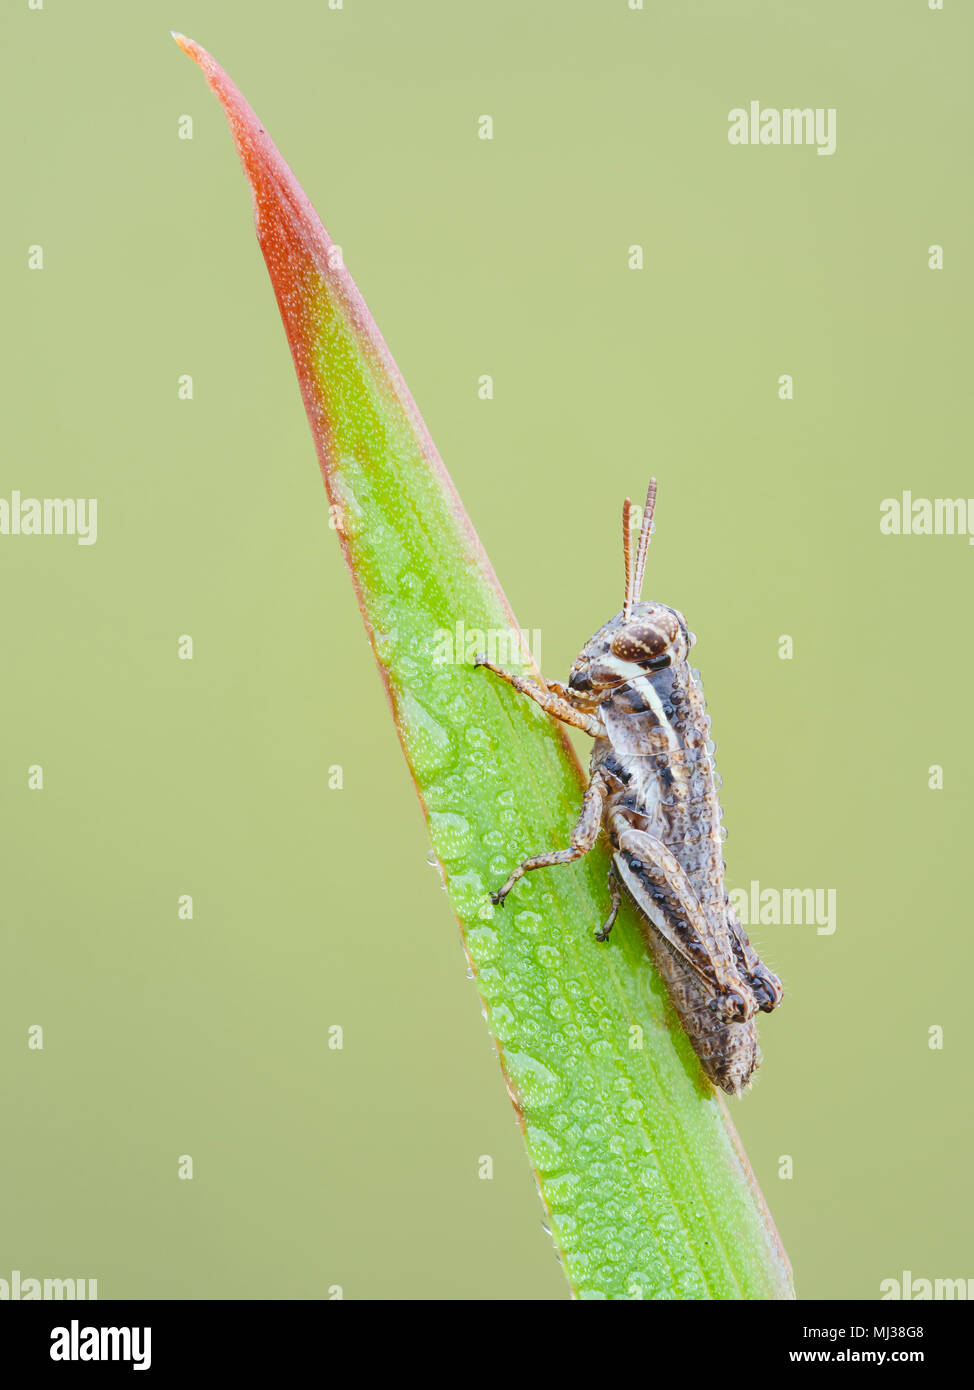 A dew-covered Spur-throated Grasshopper (Melanoplus sp.) nymph perches on a blade of grass in the cool air of early morning. - Stock Image